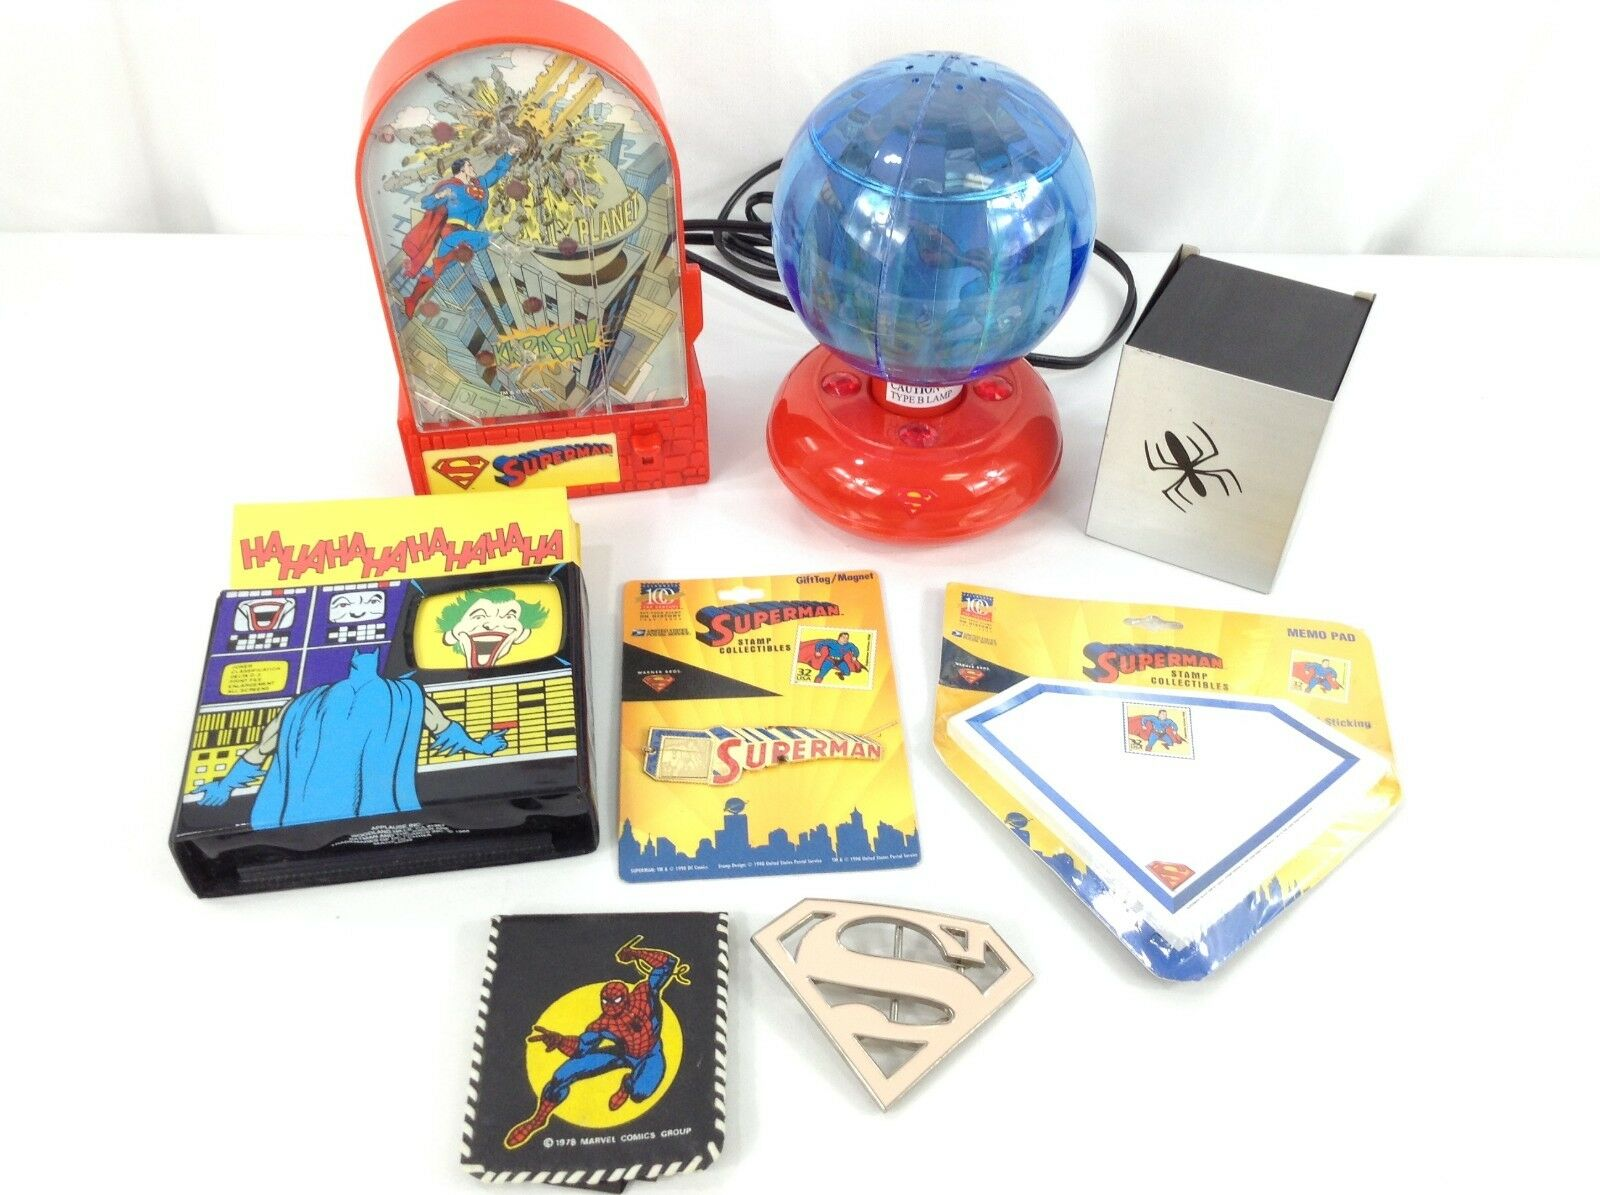 Super Hero Lot - Superman, Batman, Spiderman. Game, Light, Wallet, and more